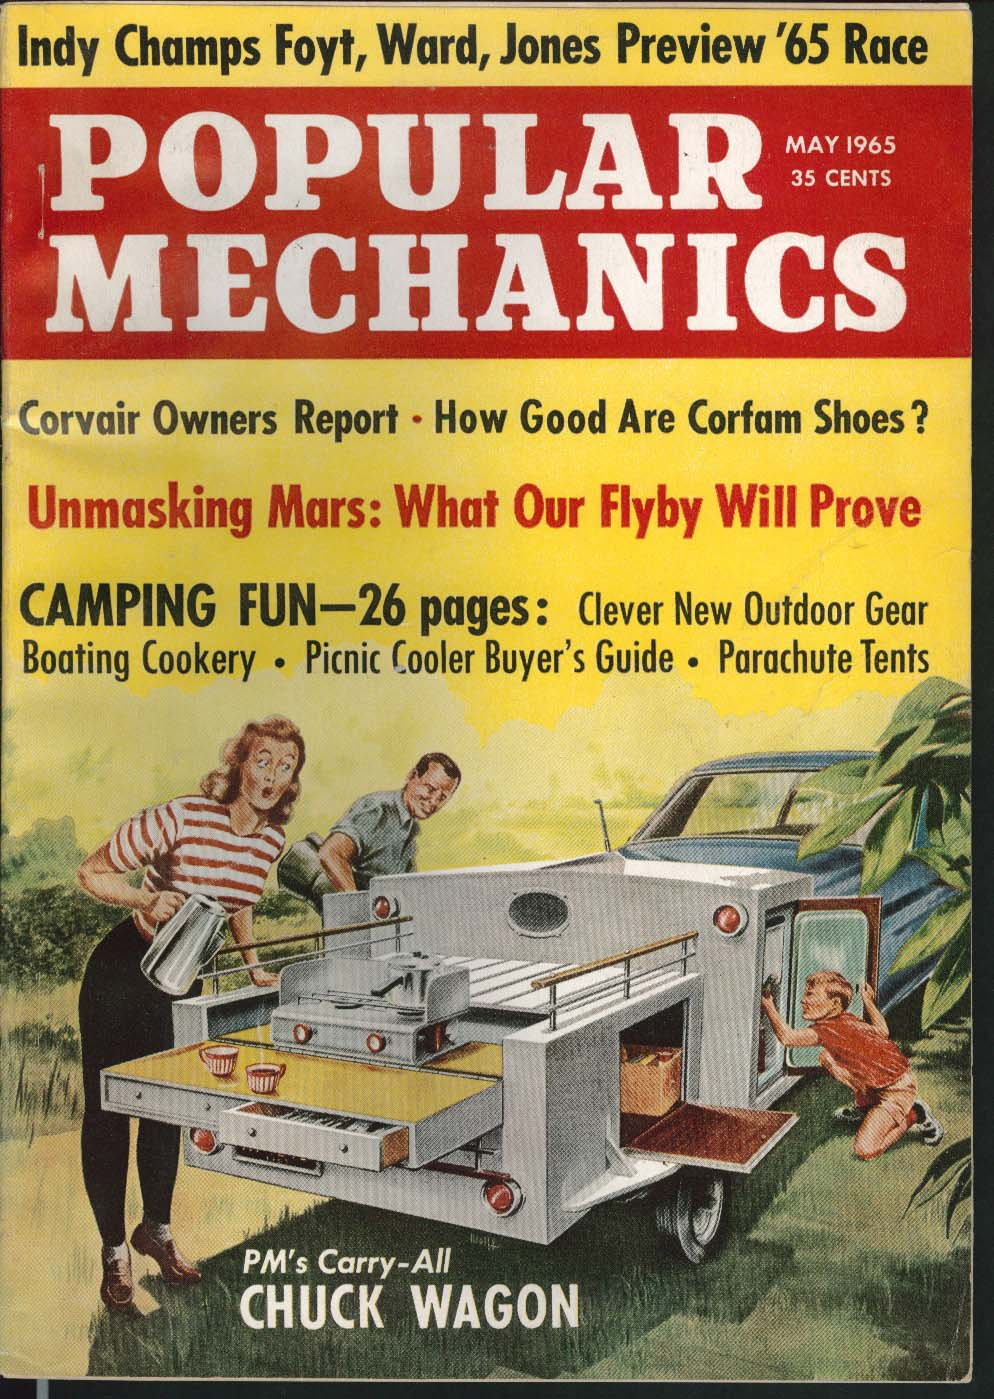 POPULAR MECHANICS Foyt Ward Jones Indy Corvair Corfam Shoes Mars Flyby ++ 5 1965